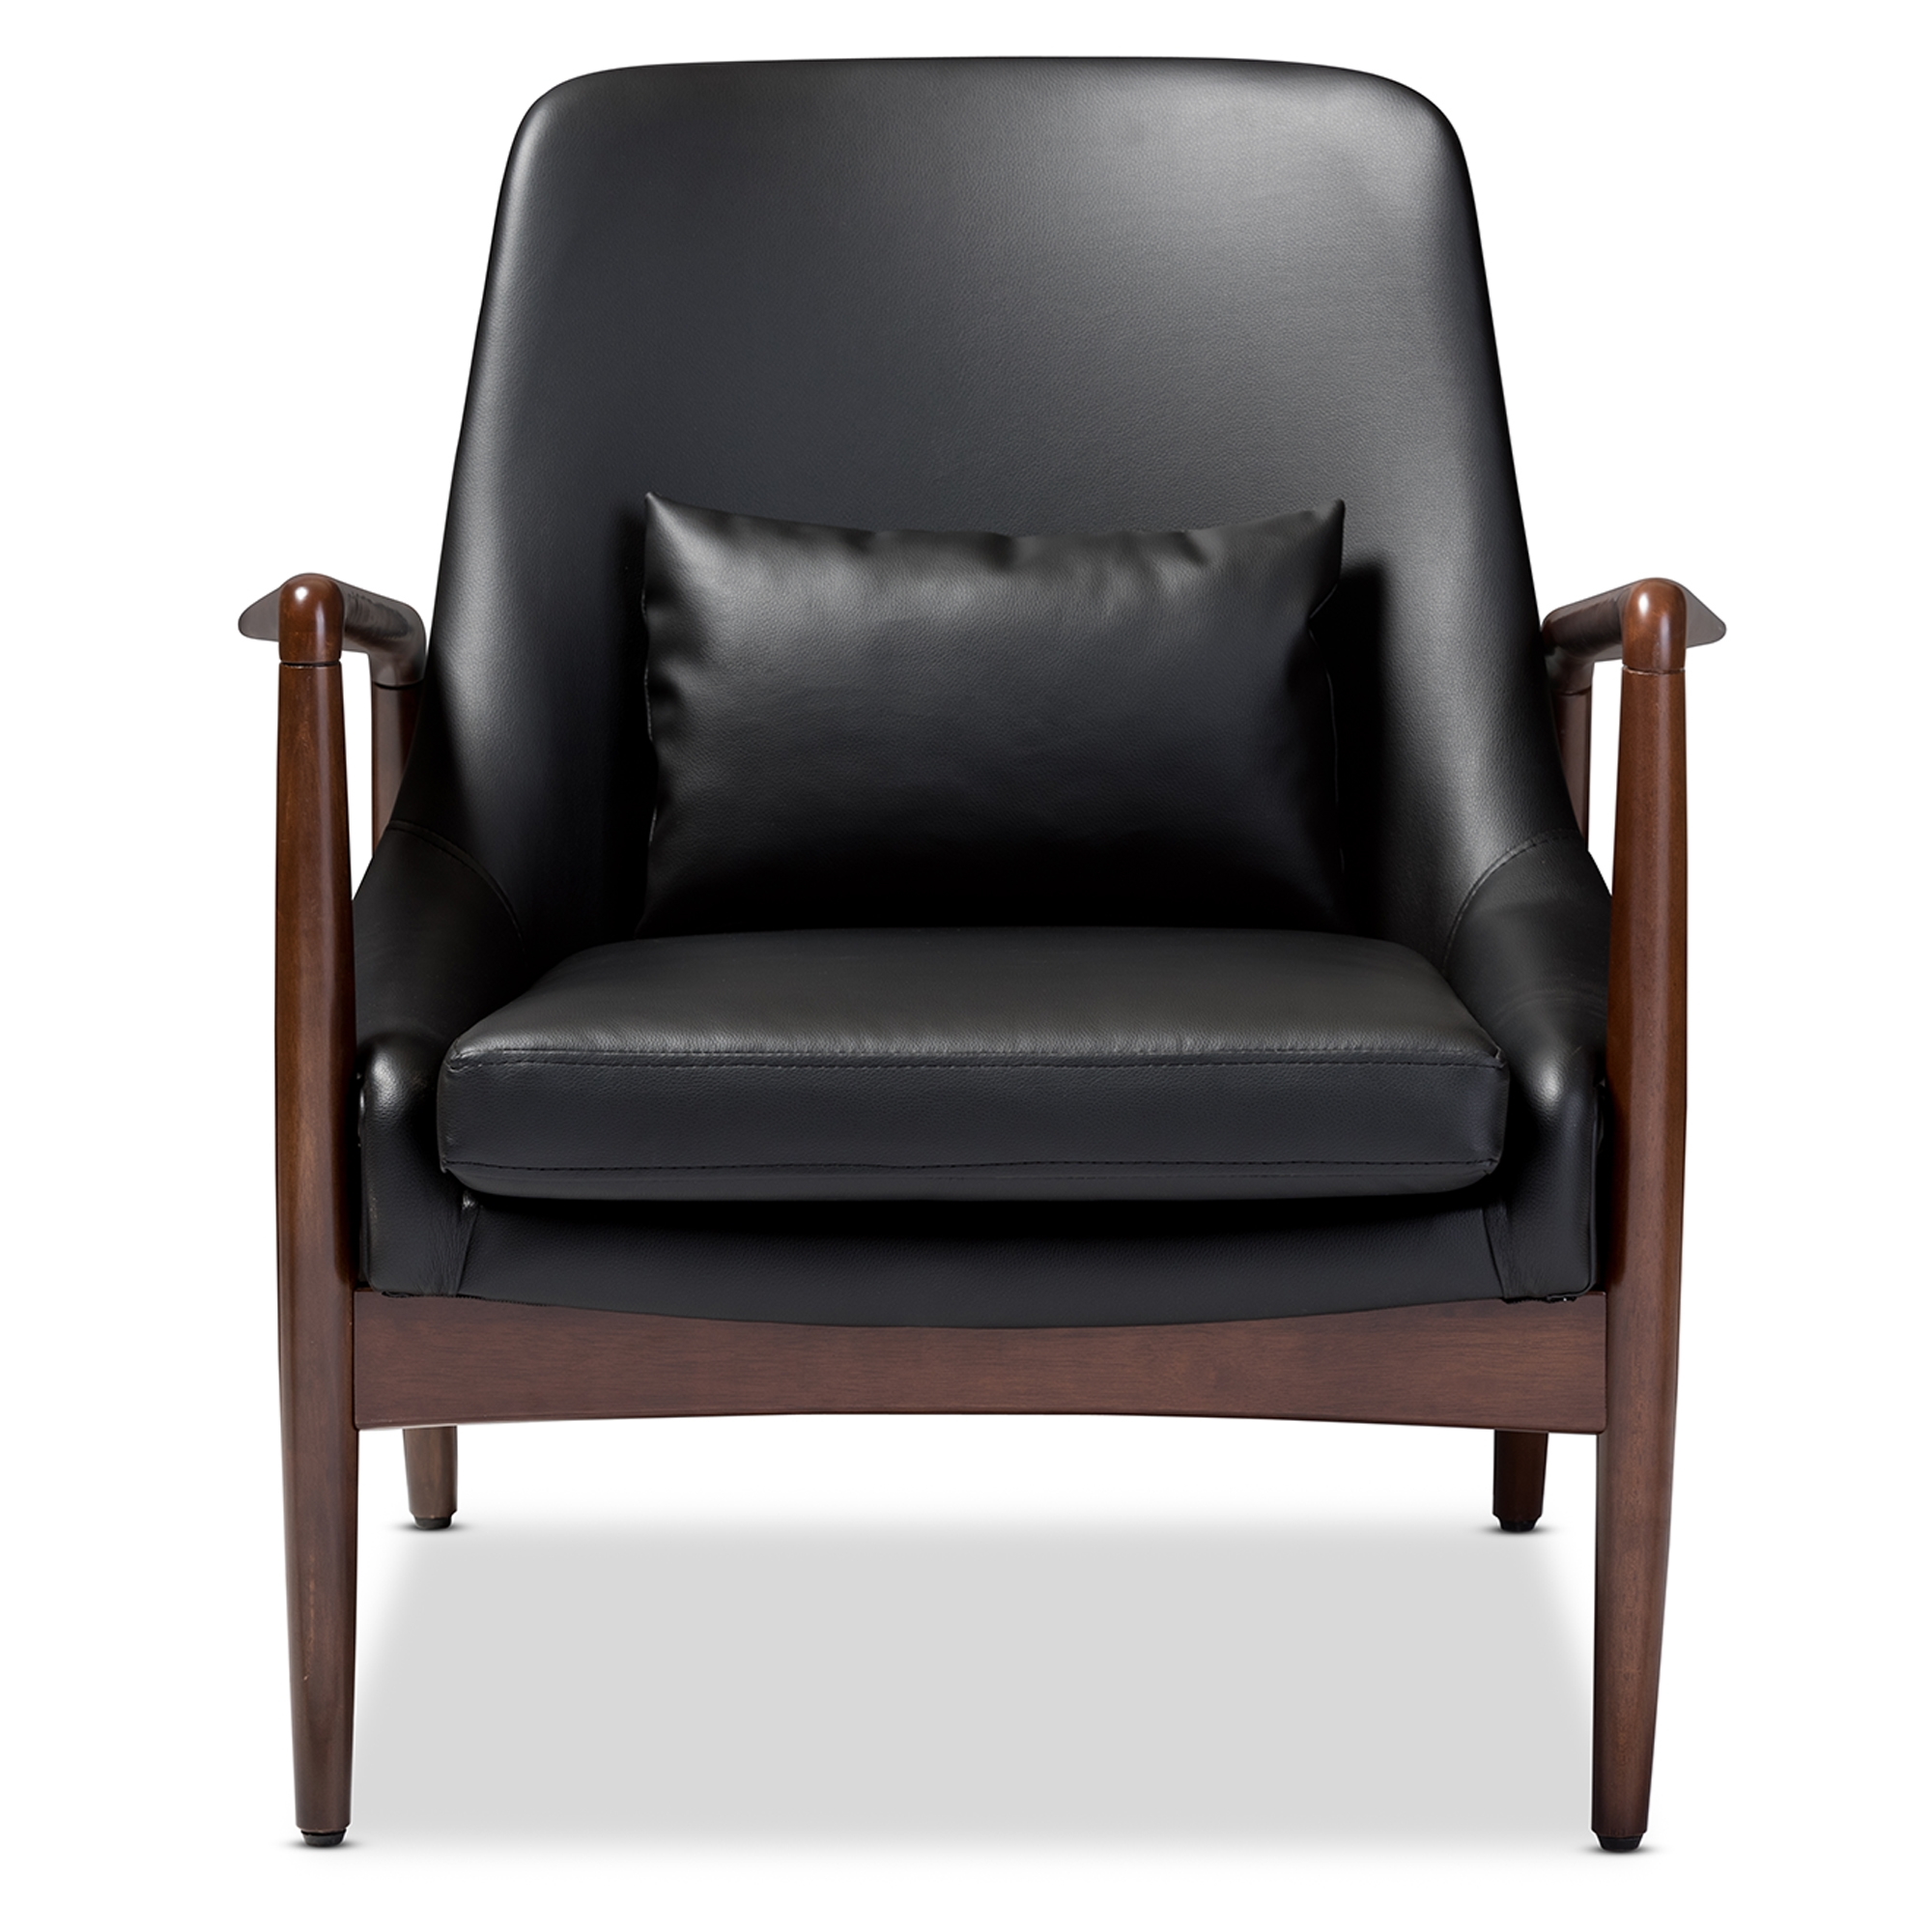 wood frame accent chairs. Baxton Studio Carter Mid-Century Modern Retro Black Faux Leather Upholstered Leisure Accent Chair In Walnut Wood Frame Chairs